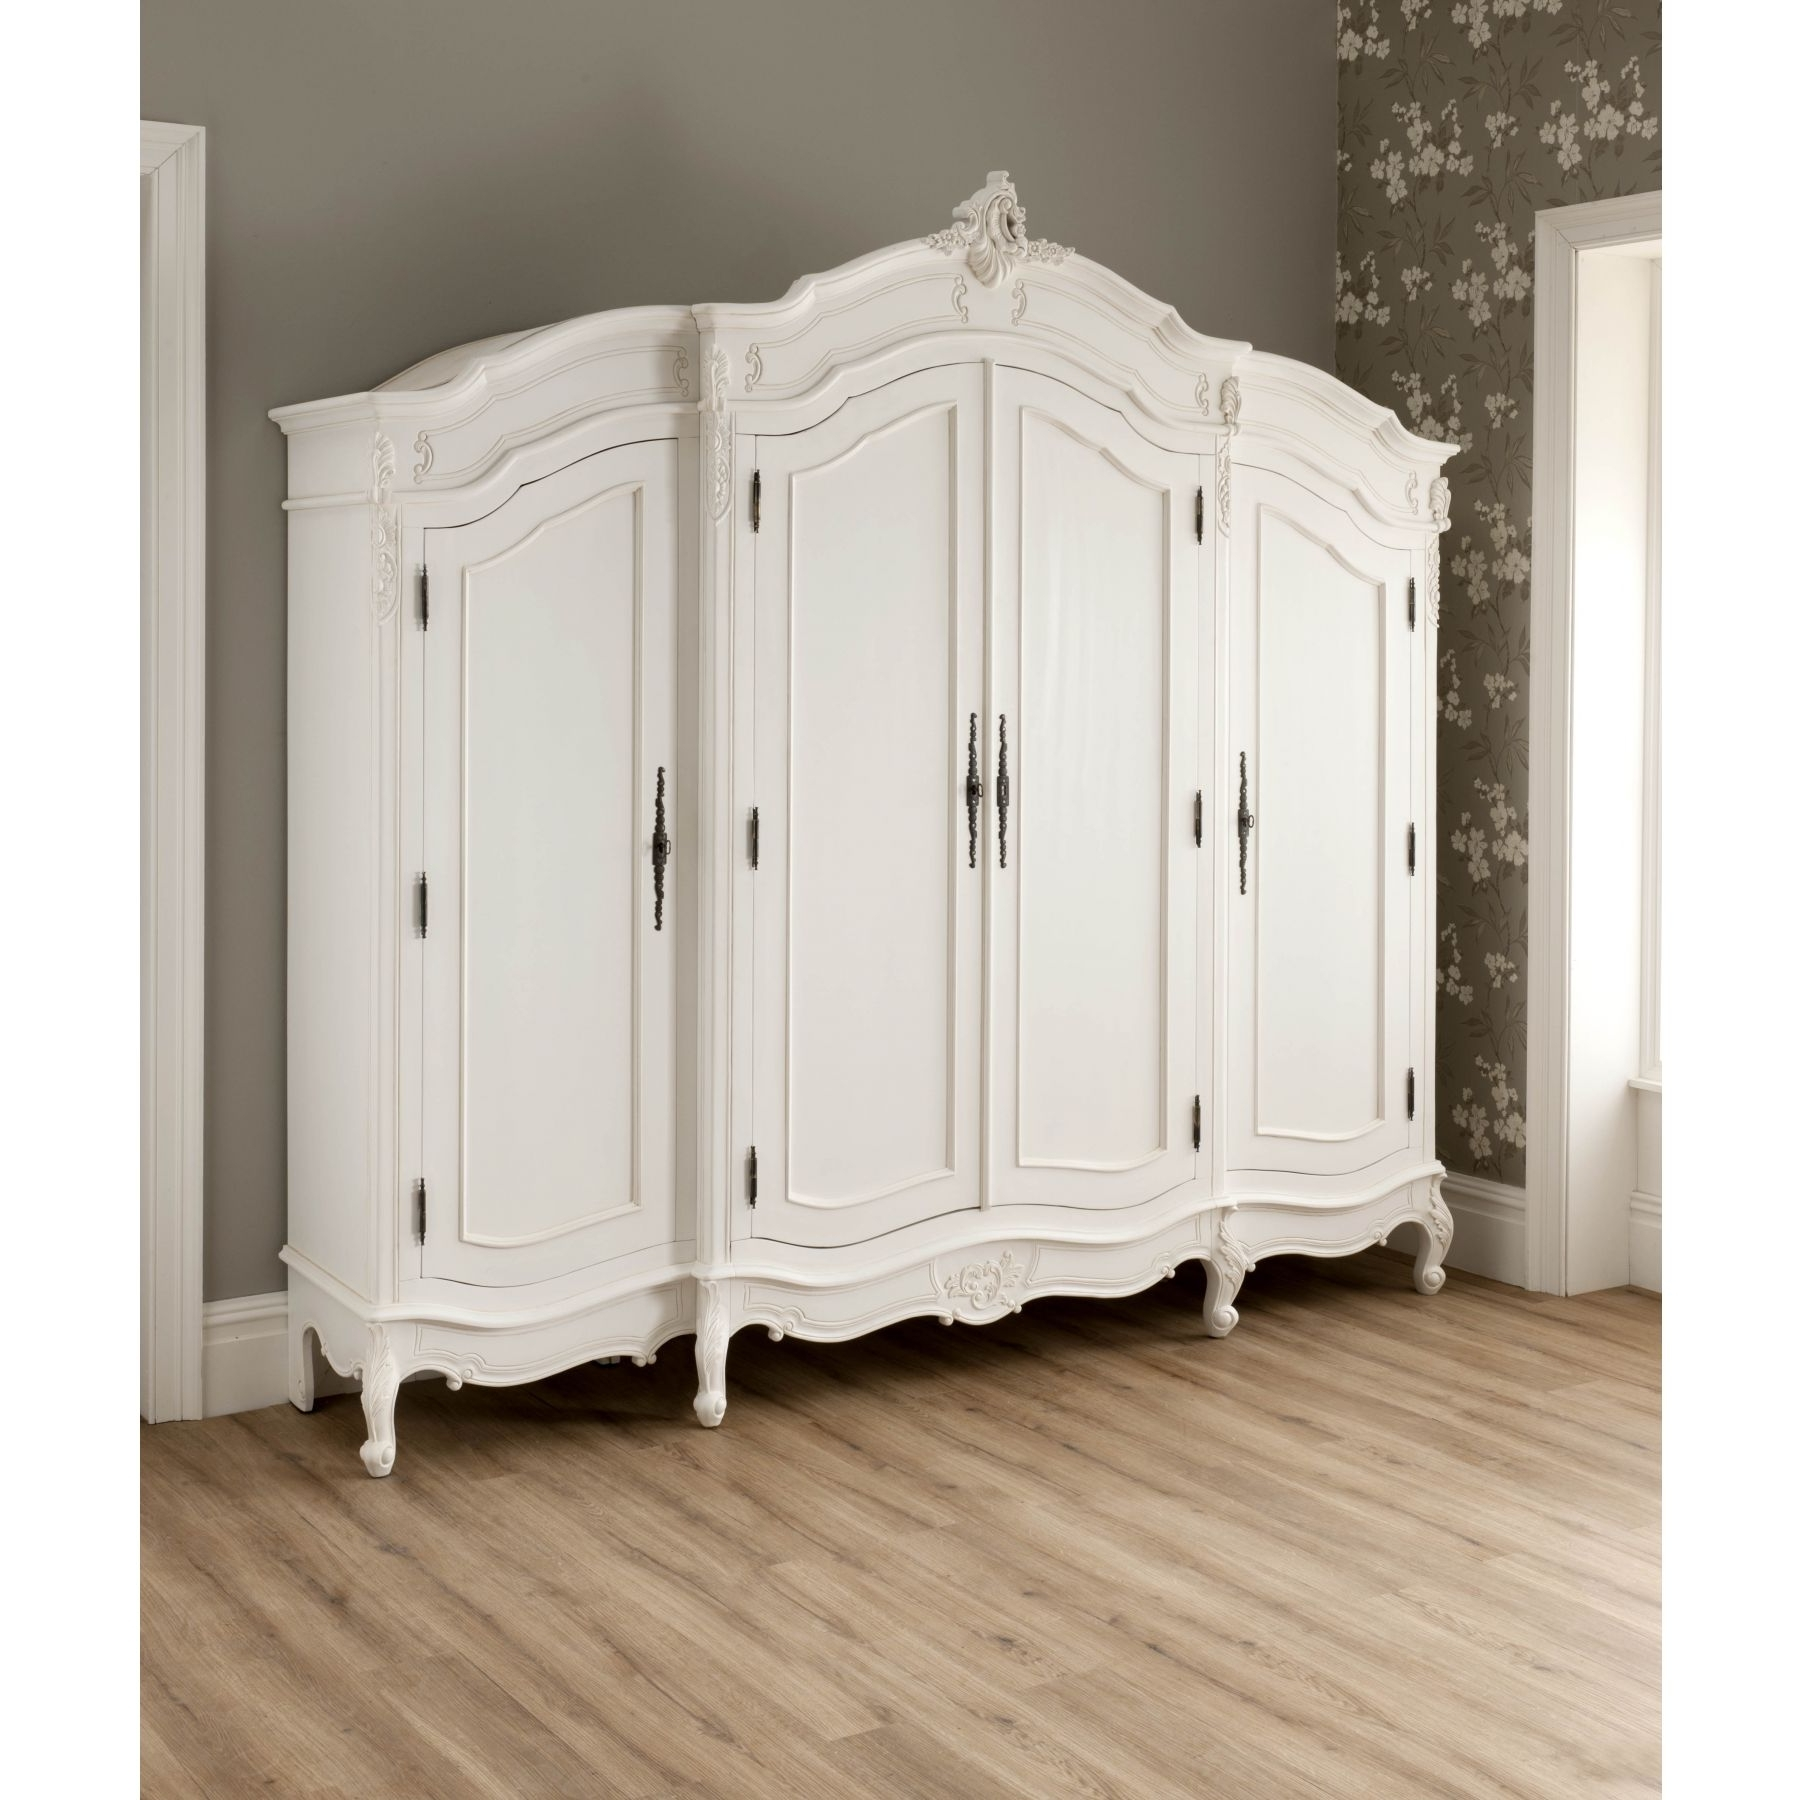 La Rochelle Antique French Wardrobe Working Well Alongside Our Within Trendy Shabby Chic White Wardrobes (View 11 of 15)